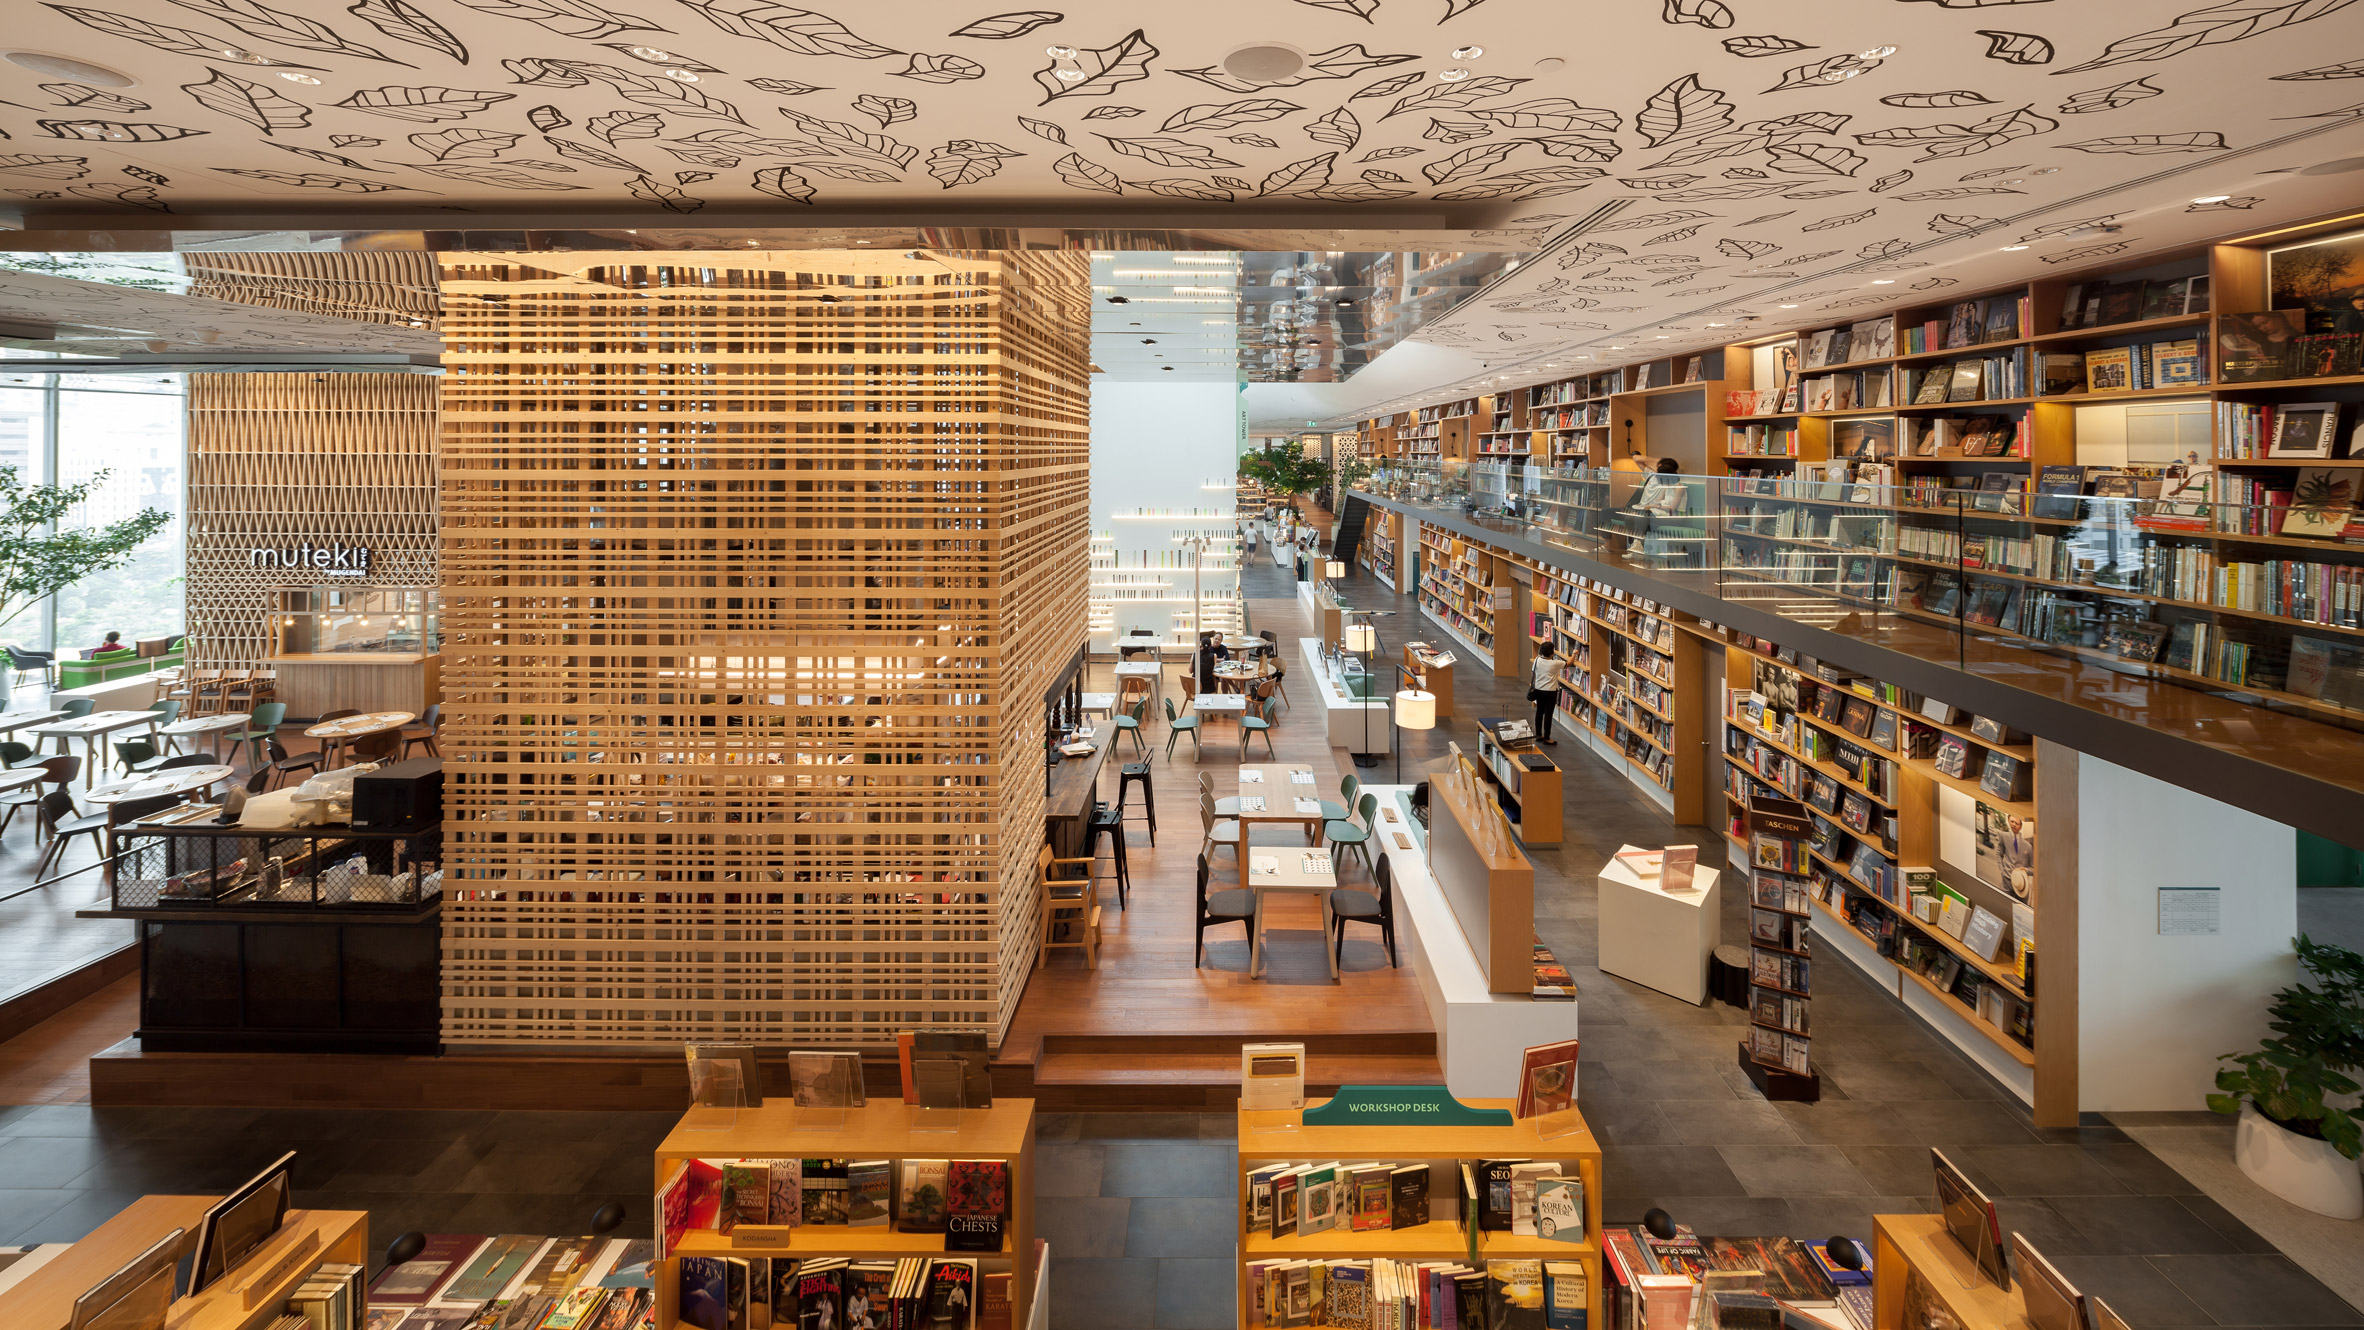 Klein Dytham creates book-lined leisure space inside AL_A's Central Embassy tower in Bangkok